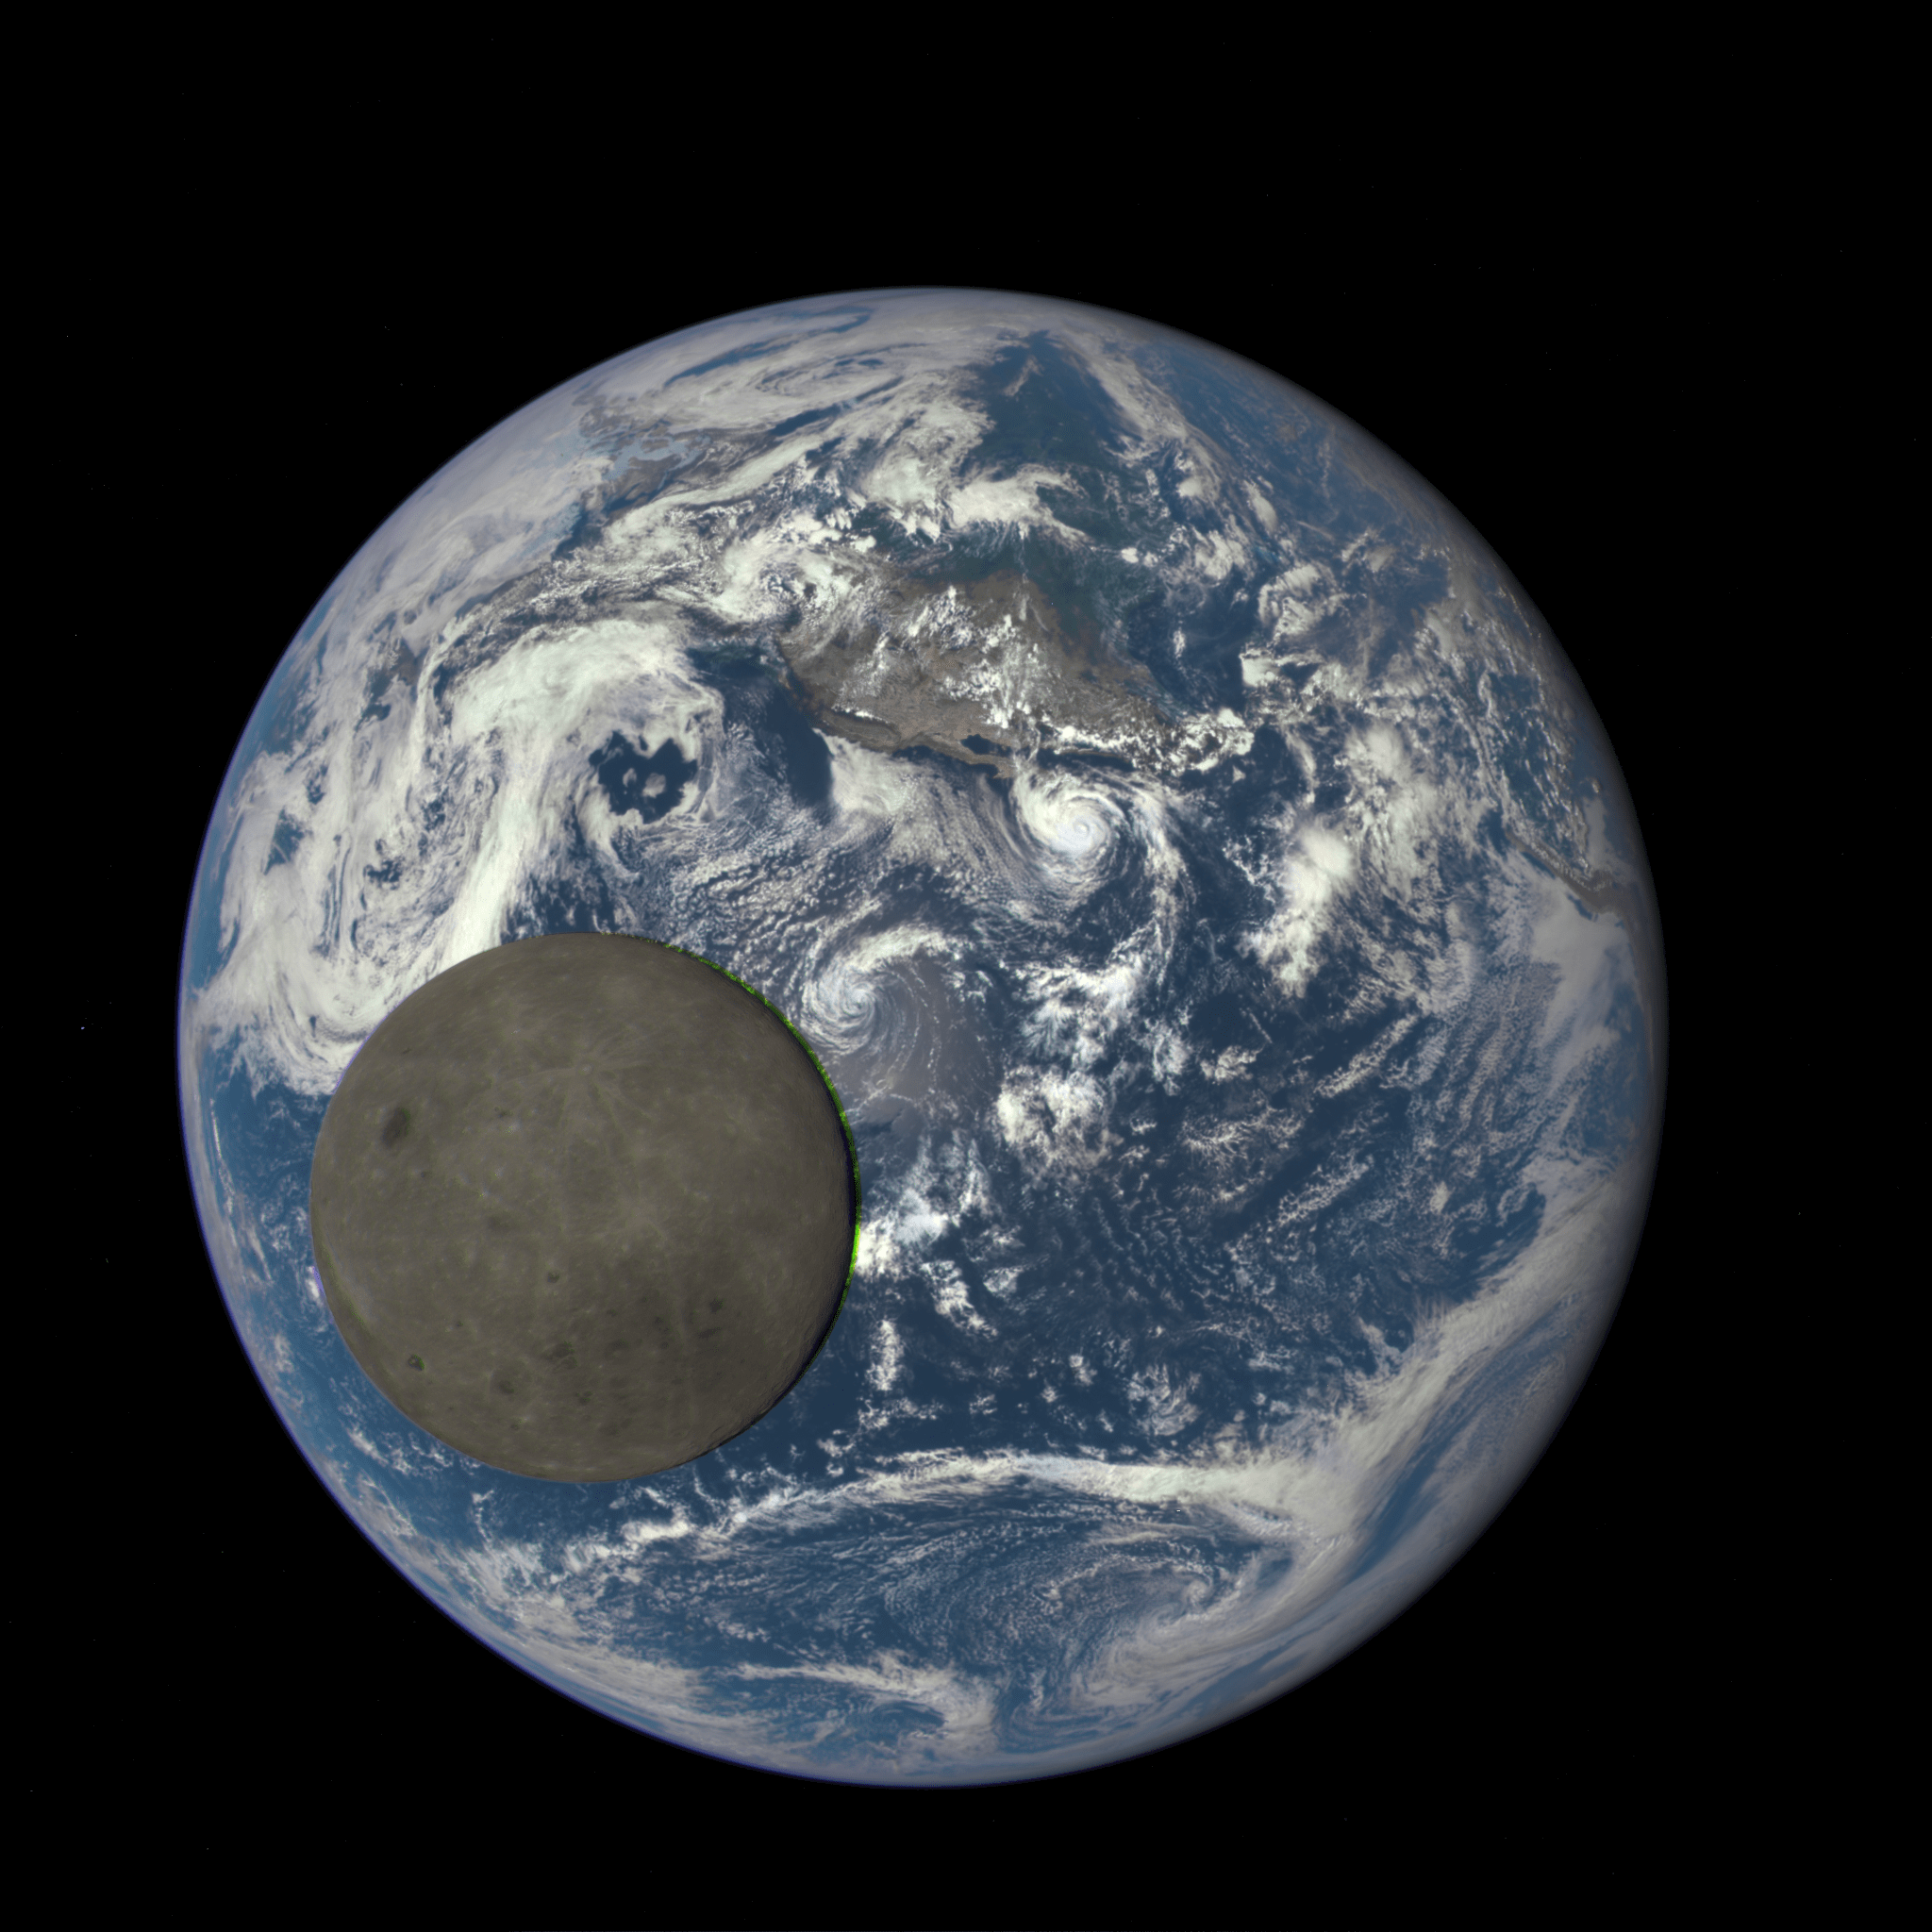 This image shows images of the far side of the moon, illuminated by the sun, as it crosses between the DISCOVR spacecraft's Earth Polychromatic Imaging Camera (EPIC) camera and telescope, and the Earth - one million miles away.  Credits: NASA/NOAA